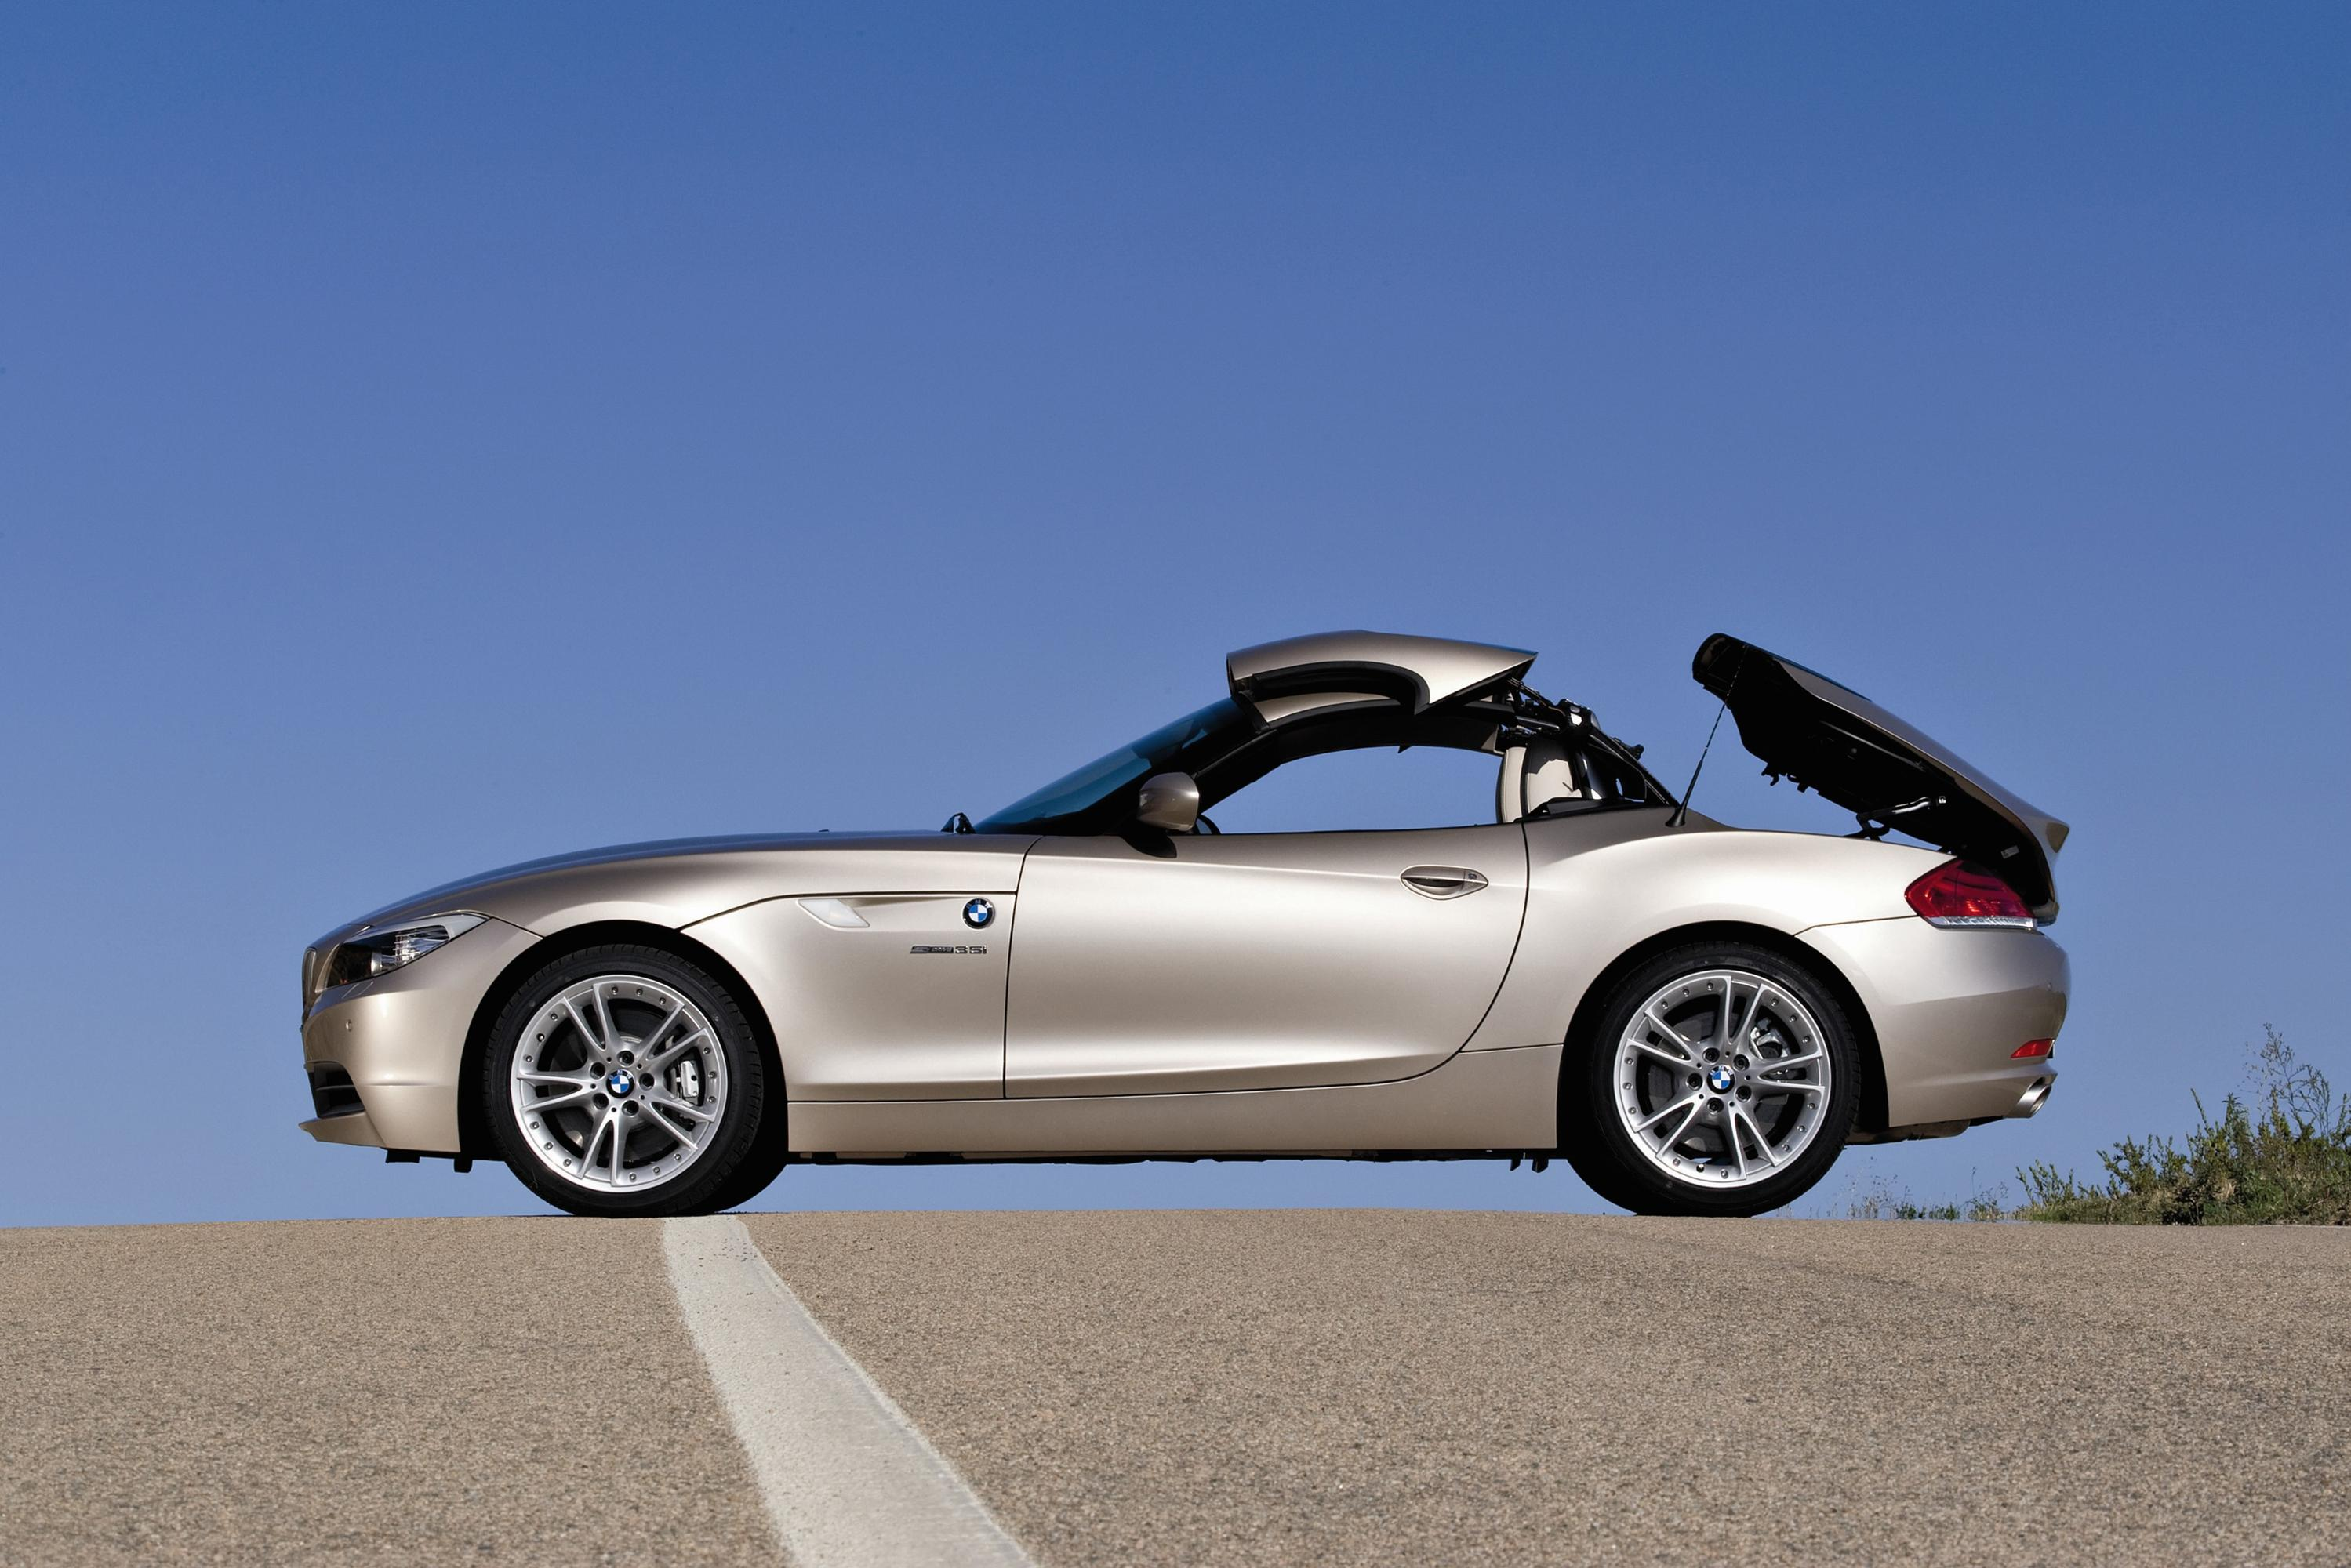 New Bmw Z4 Roadster To Make World Debut At 2009 North American